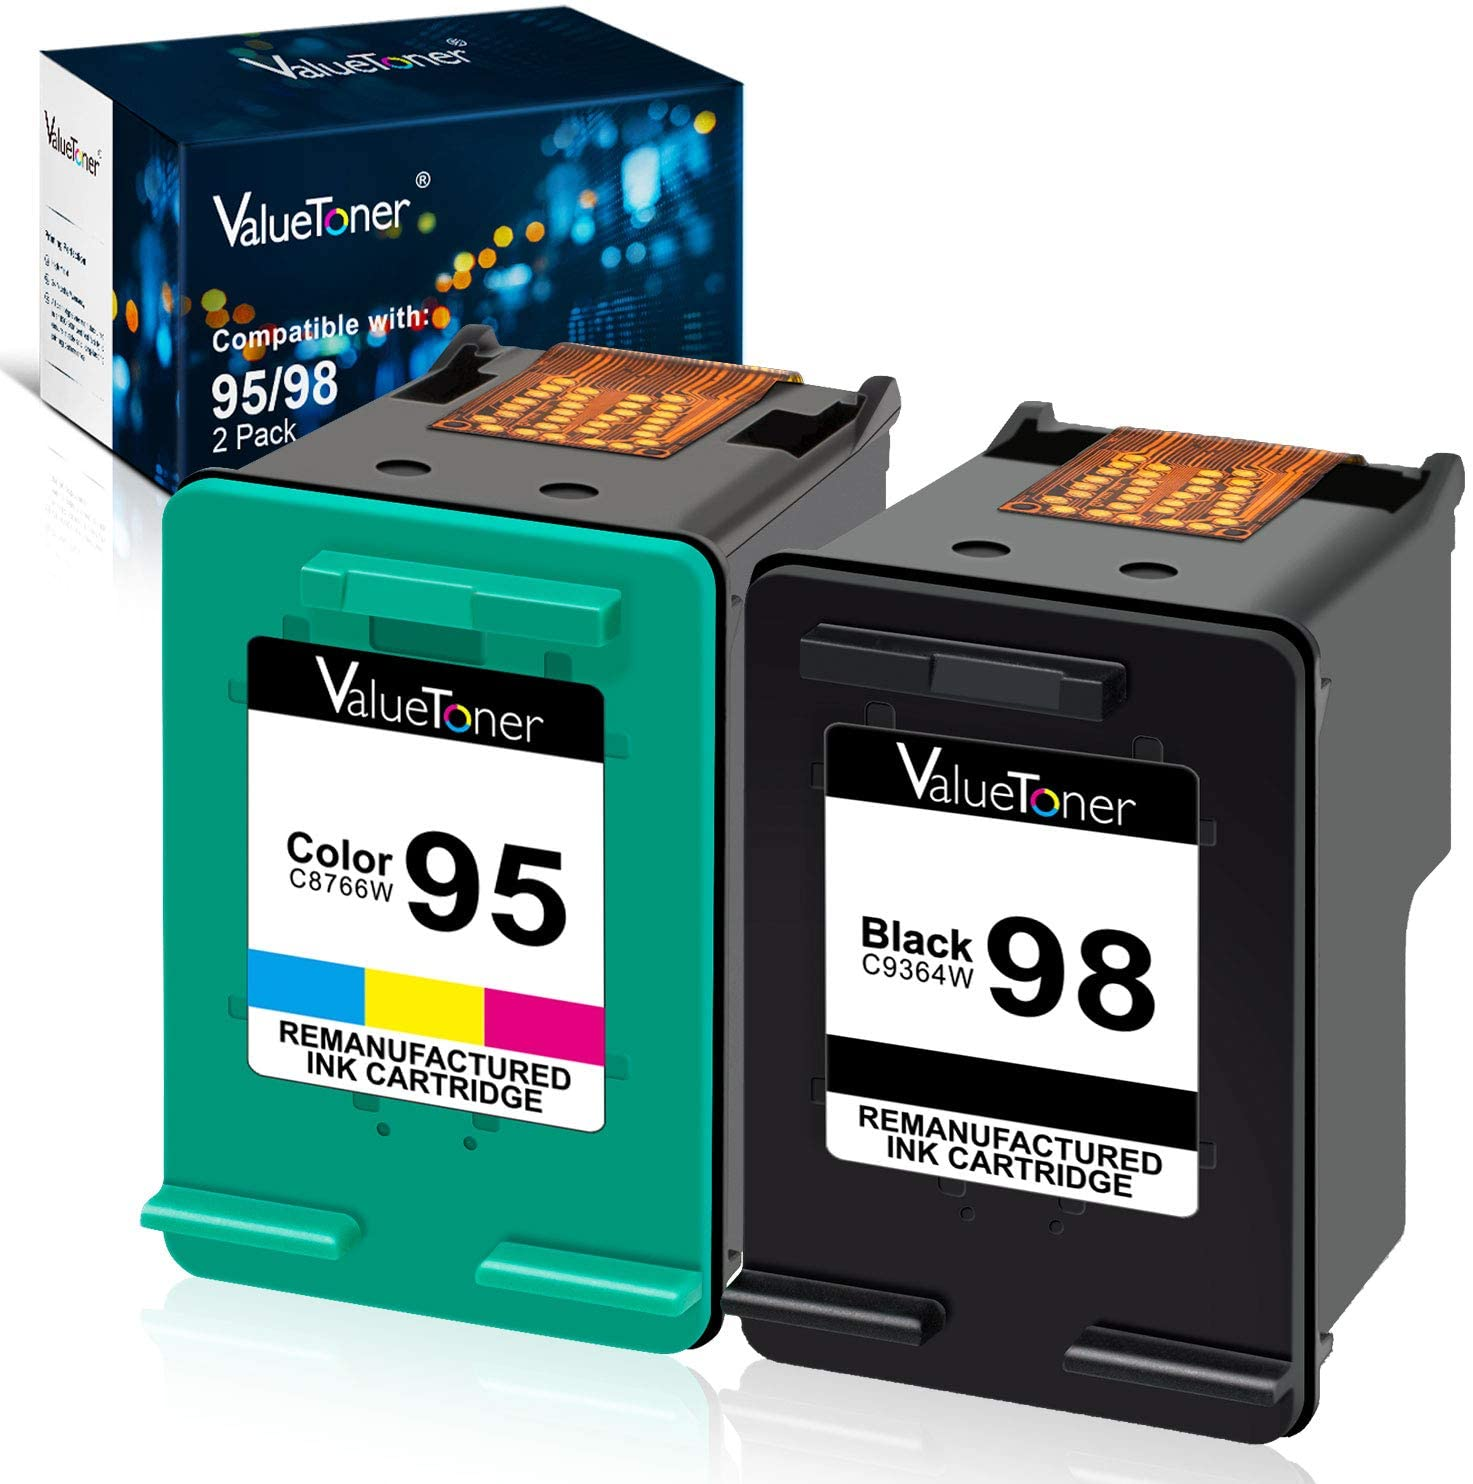 Valuetoner Remanufactured Ink Cartridge Replacement for HP 98 C9364WN & 95 C8766WN for Officejet 150 100 6310, PhotoSmart 8050 C4180 C4150, Deskjet 460 5940 Printer (1 Black, 1 Tri-Color, 2 Pack)